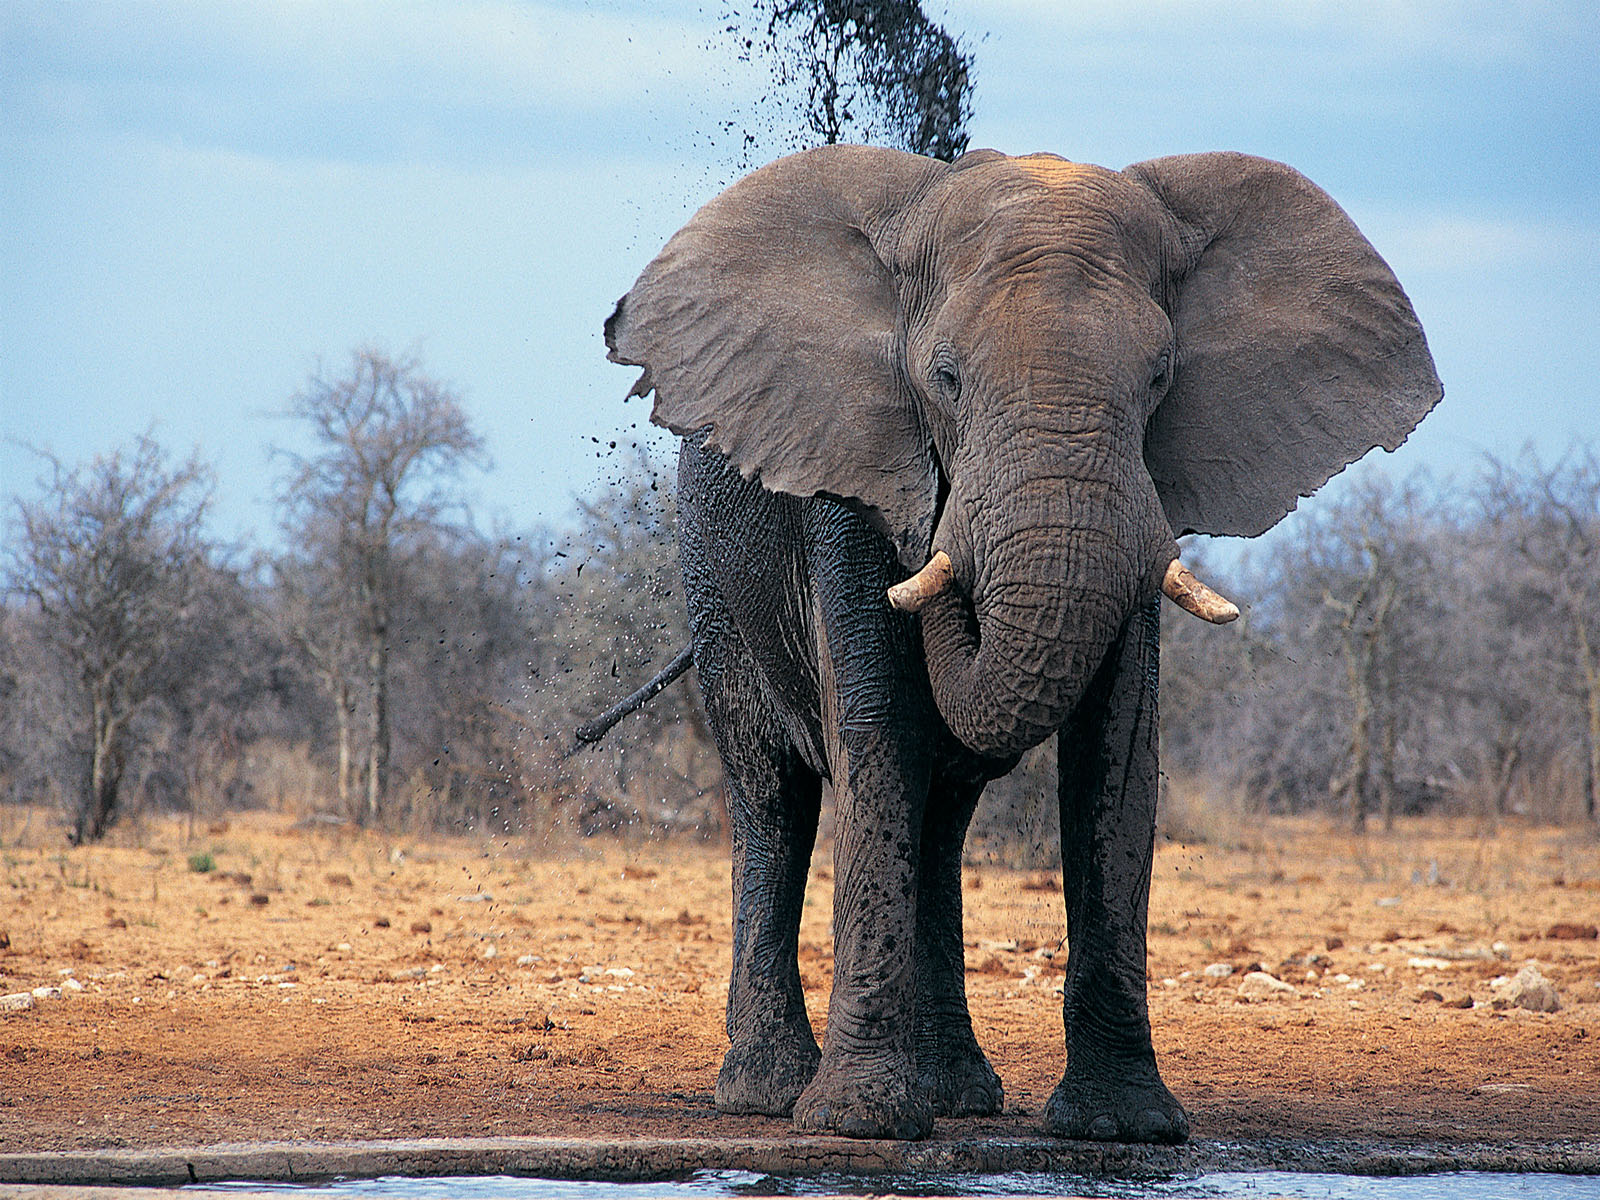 Elephants are a symbol of wisdom in asian cultures and